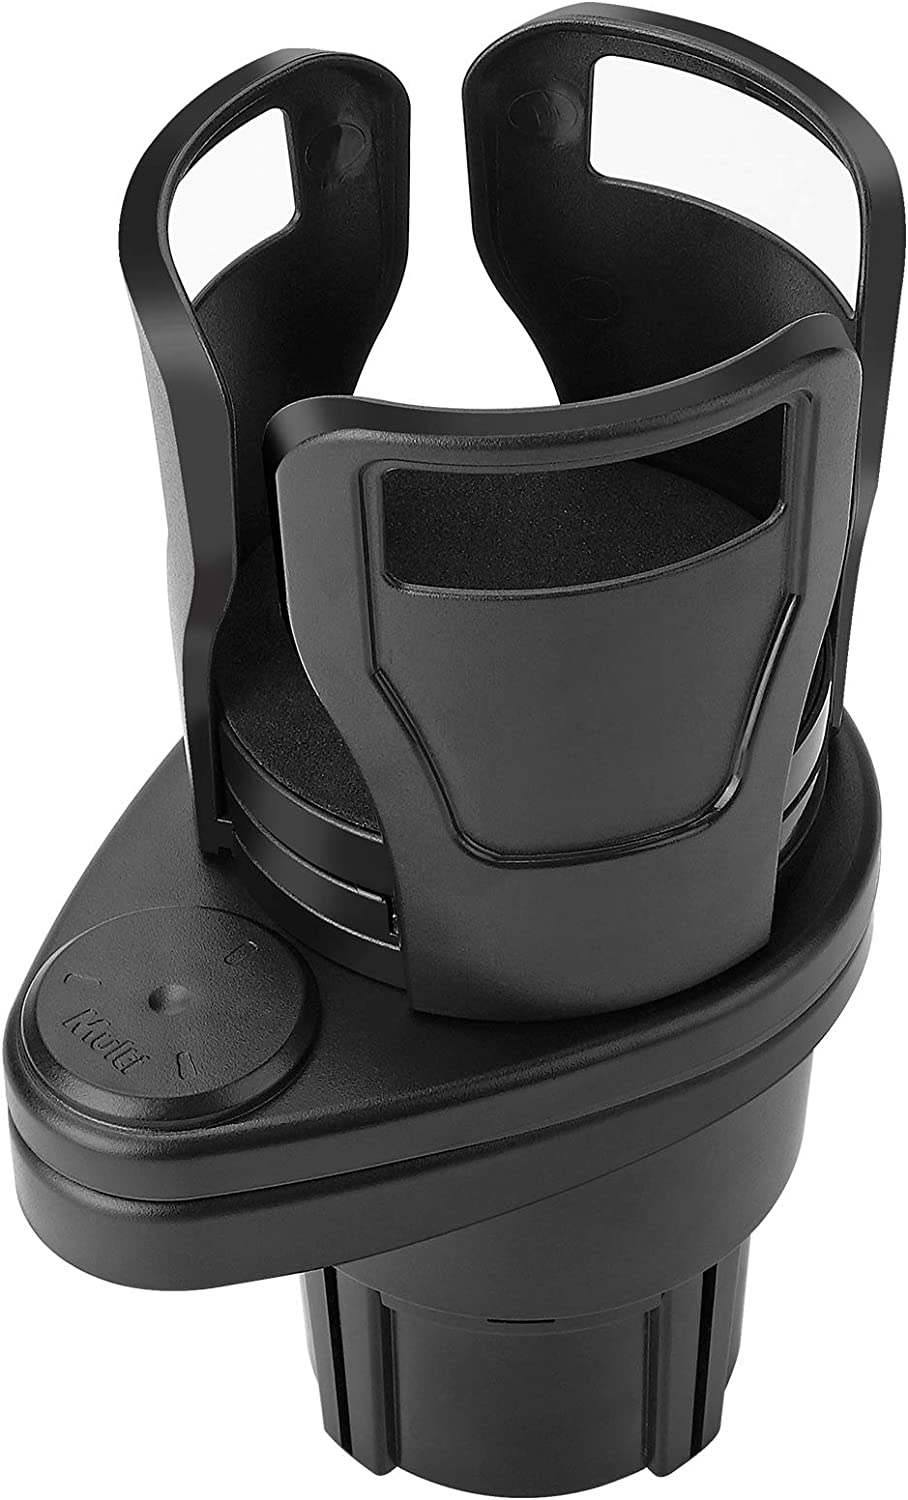 2 in 1 Car Cup Holder Expander Adapter, Universal Dual Cup Mount Extender Organizer 360° Rotating Adjustable Base Water Cup Drink Holder to Hold Most 17oz-20oz Coffee Beverage Bottles Storage Rack